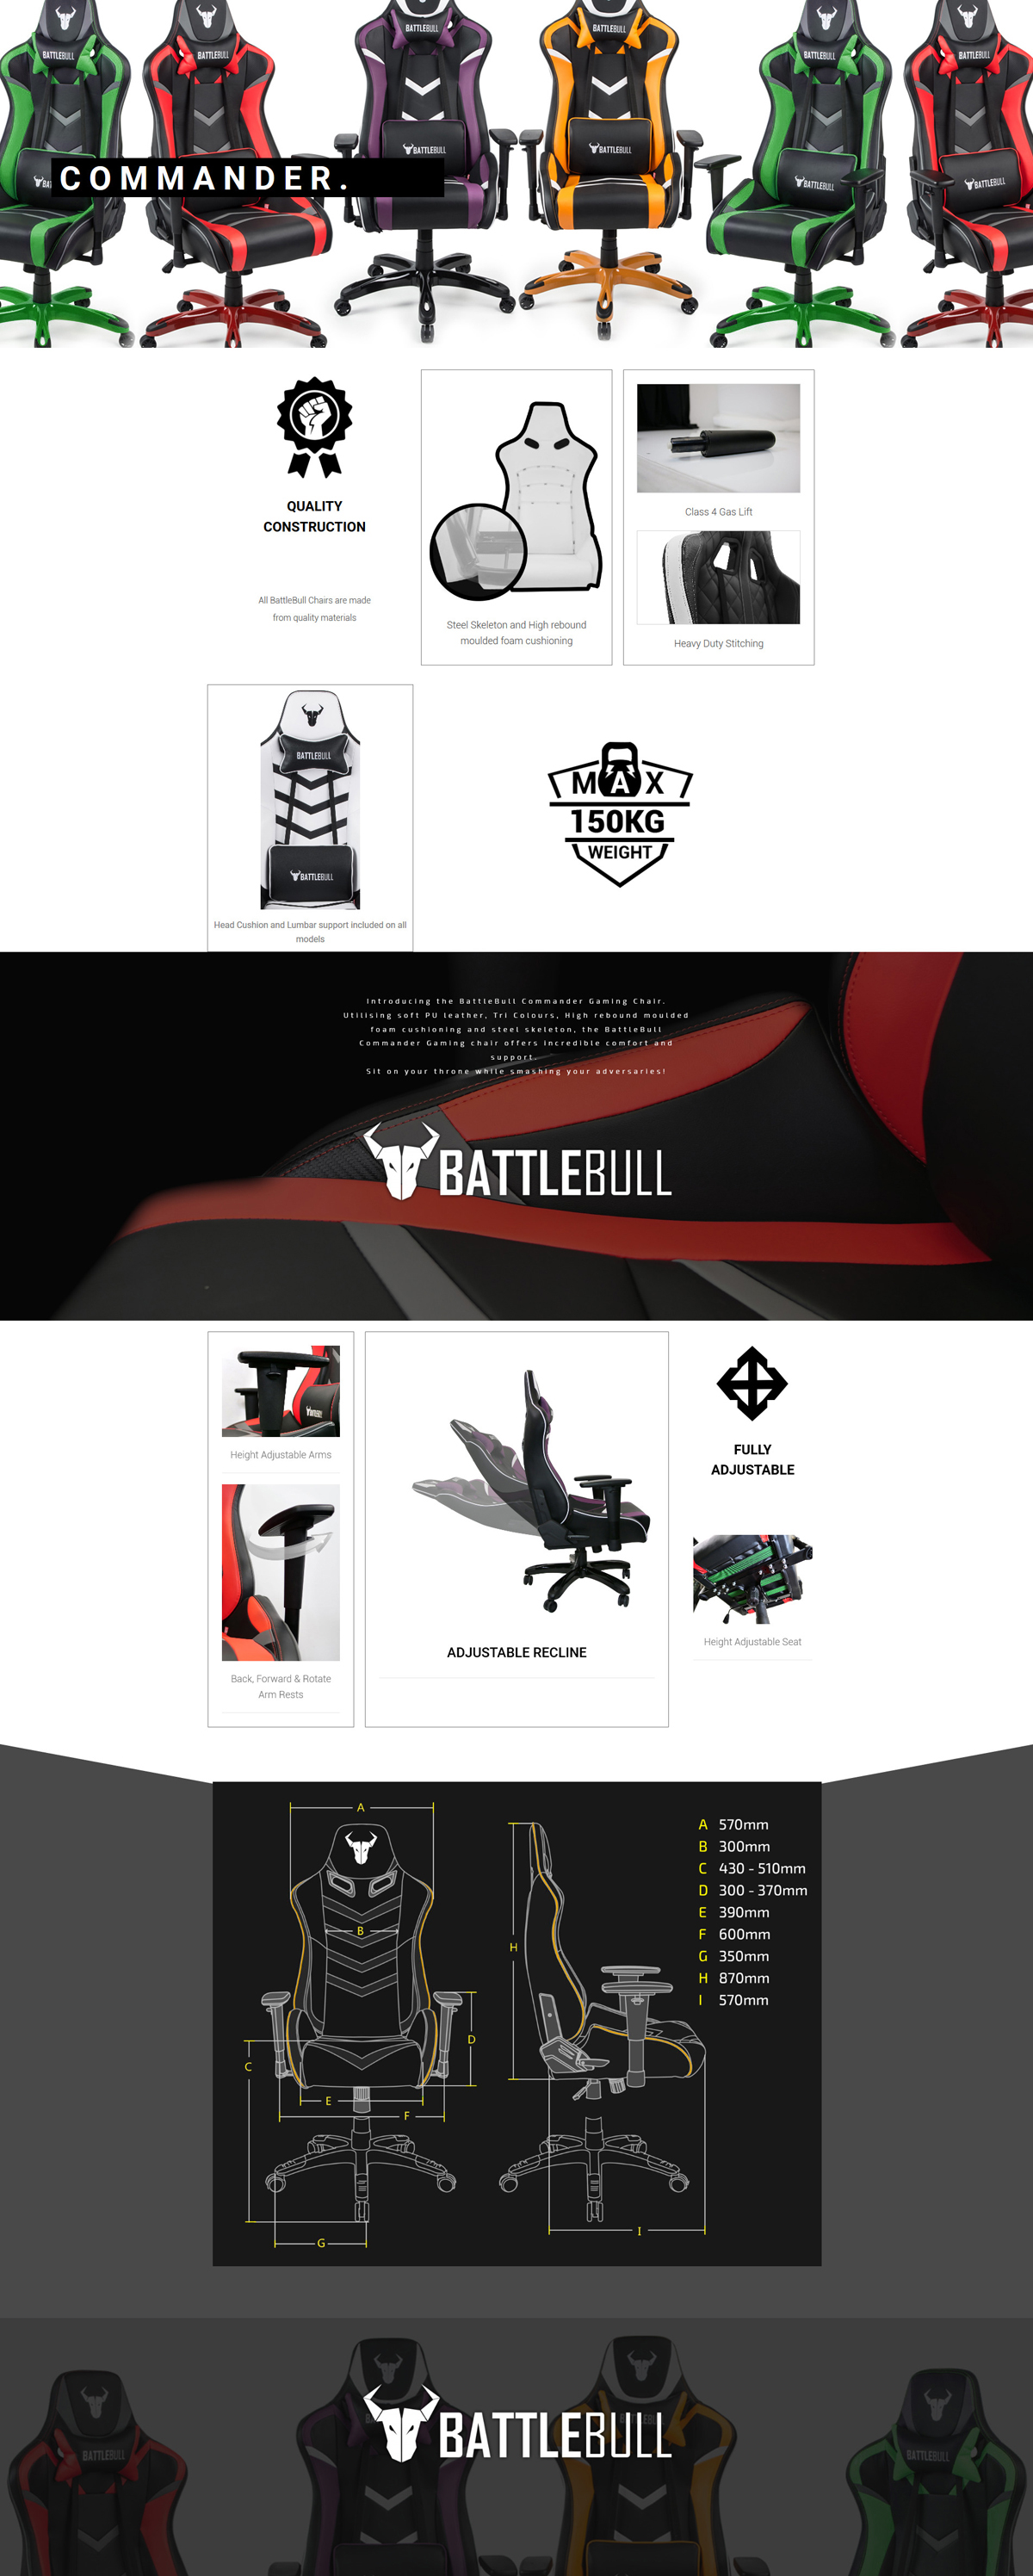 A large marketing image providing additional information about the product BattleBull Commander Gaming Chair Black/Red/Grey - Additional alt info not provided